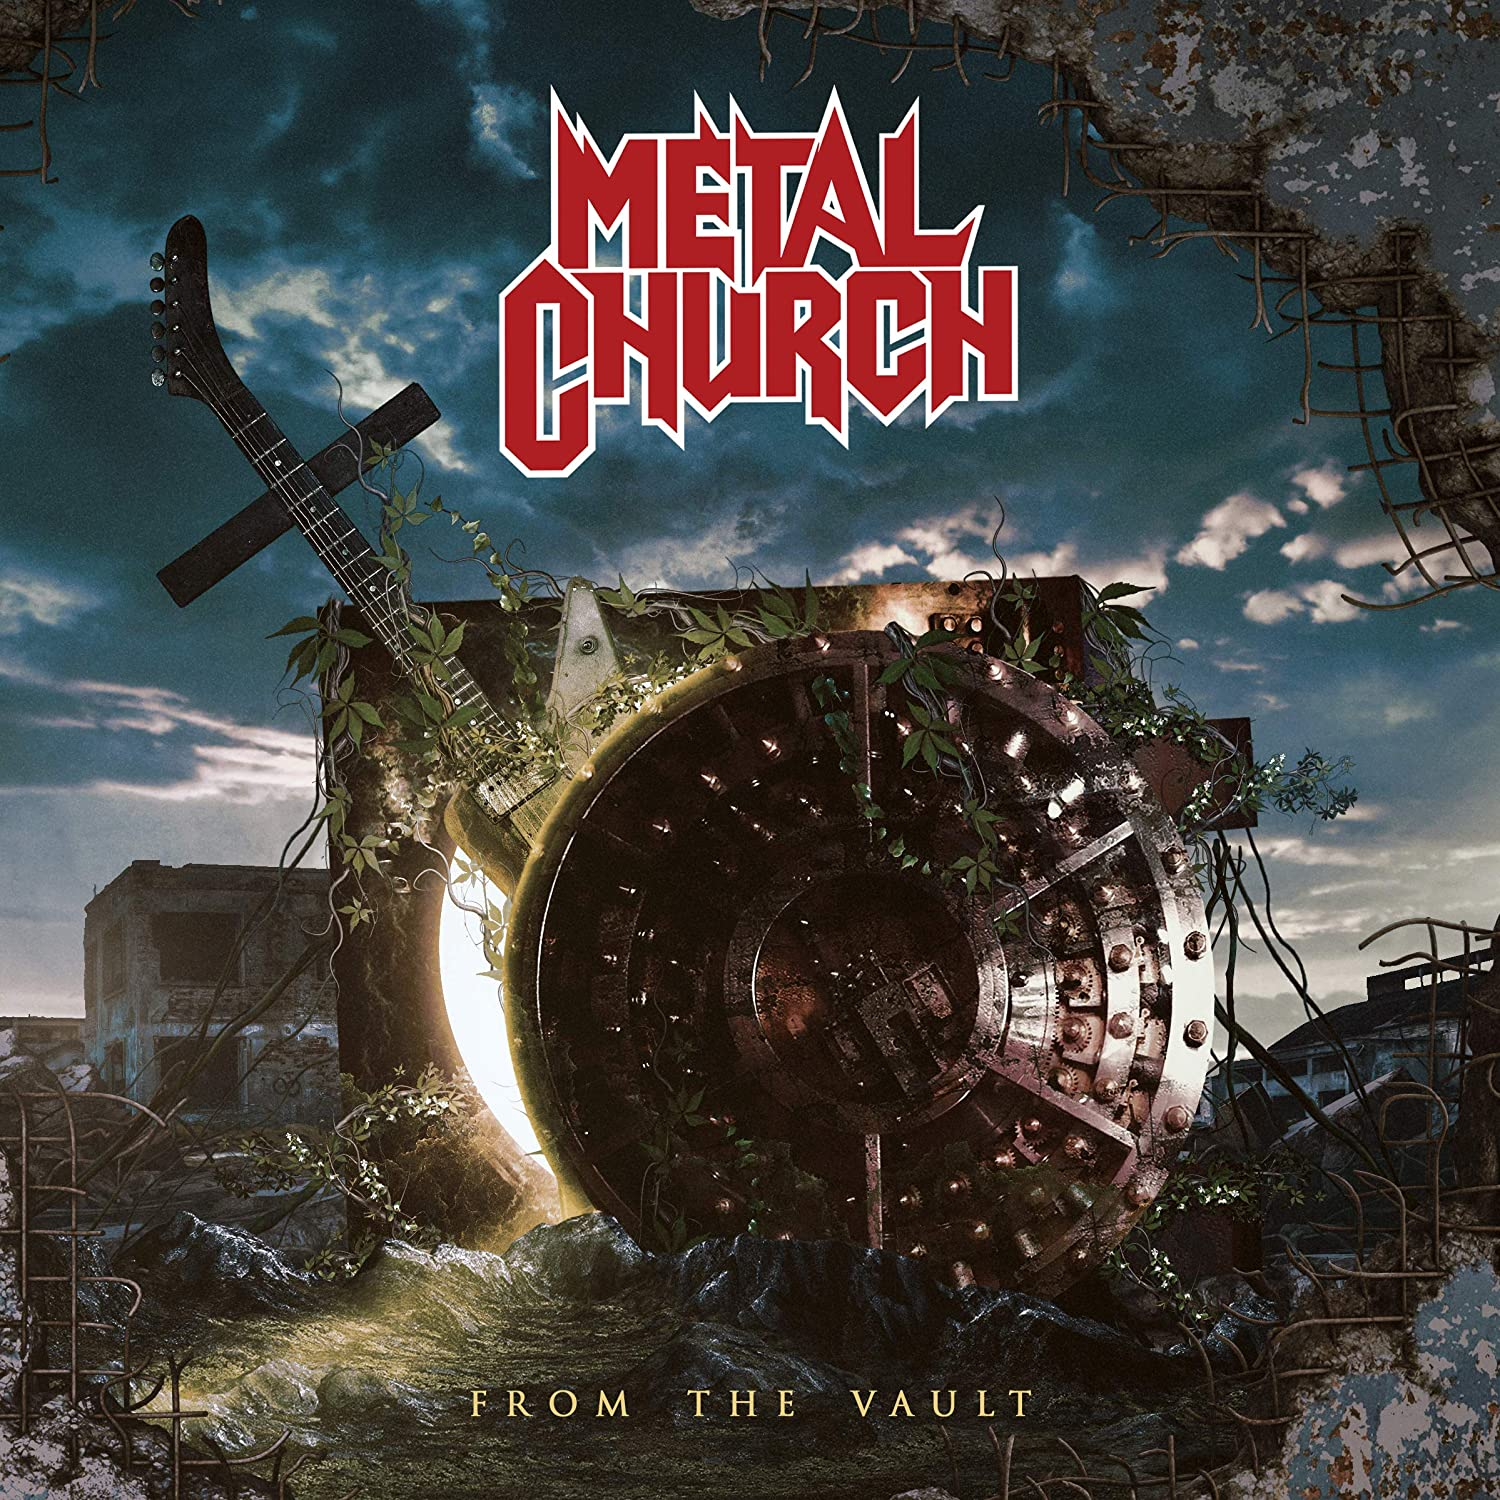 Metal Church : From The Vault